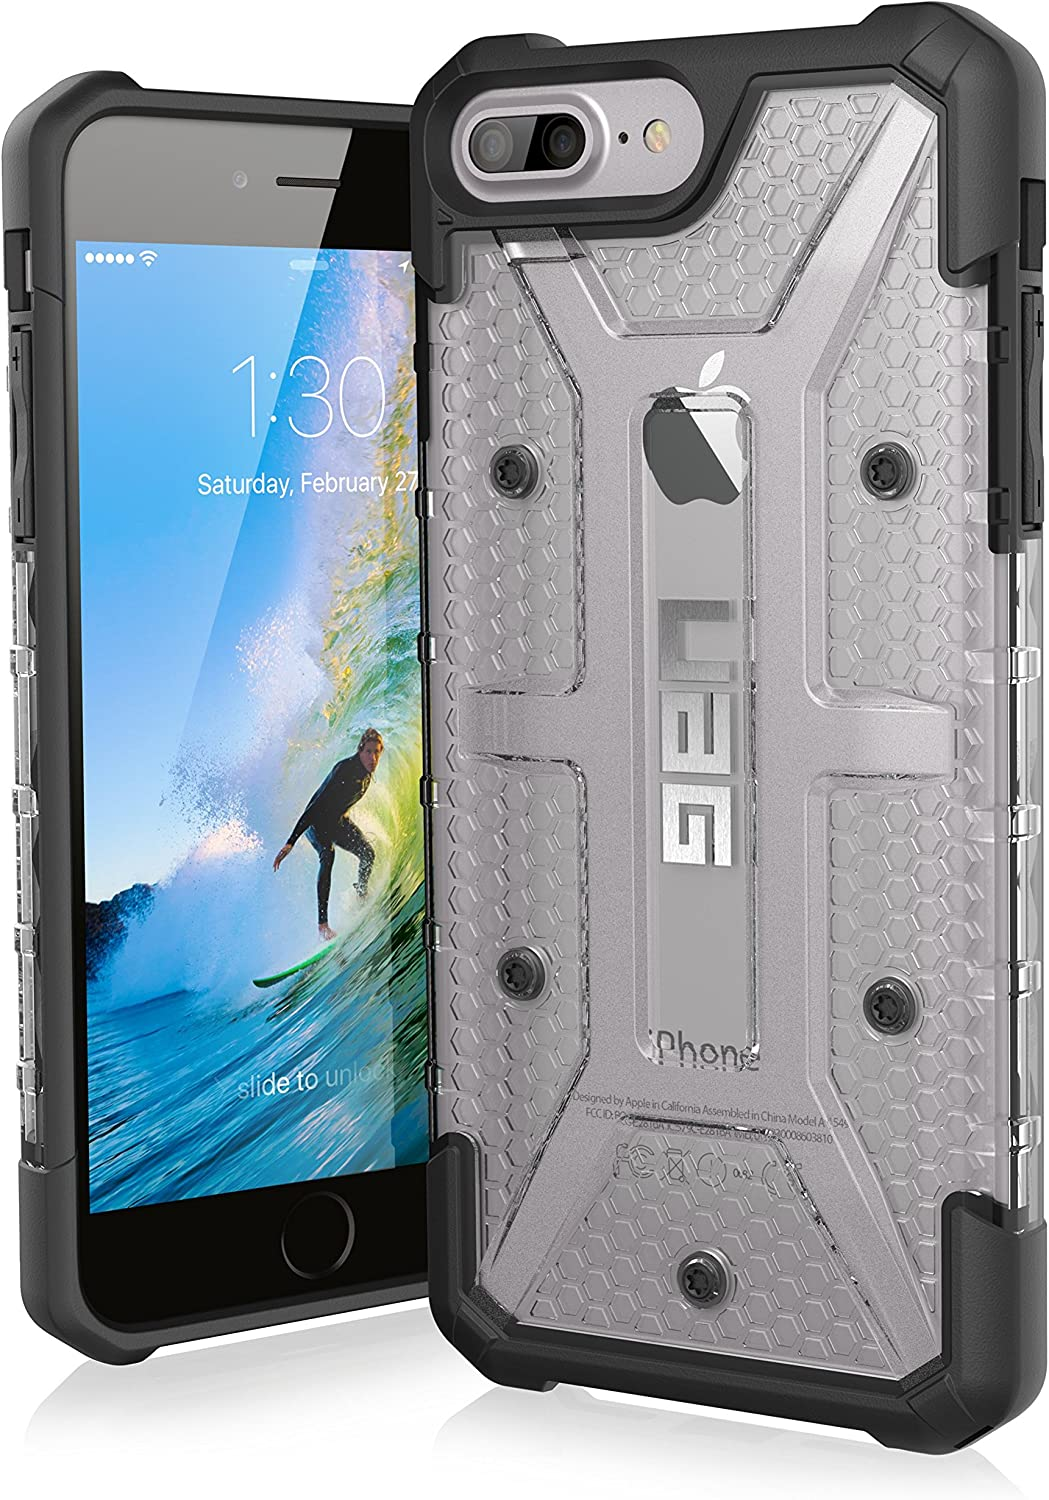 URBAN ARMOR GEAR UAG iPhone 8 Plus/iPhone 7 Plus/iPhone 6s Plus [5.5-inch screen] Plasma Feather-Light Rugged [Ice] Military Drop Tested iPhone Case